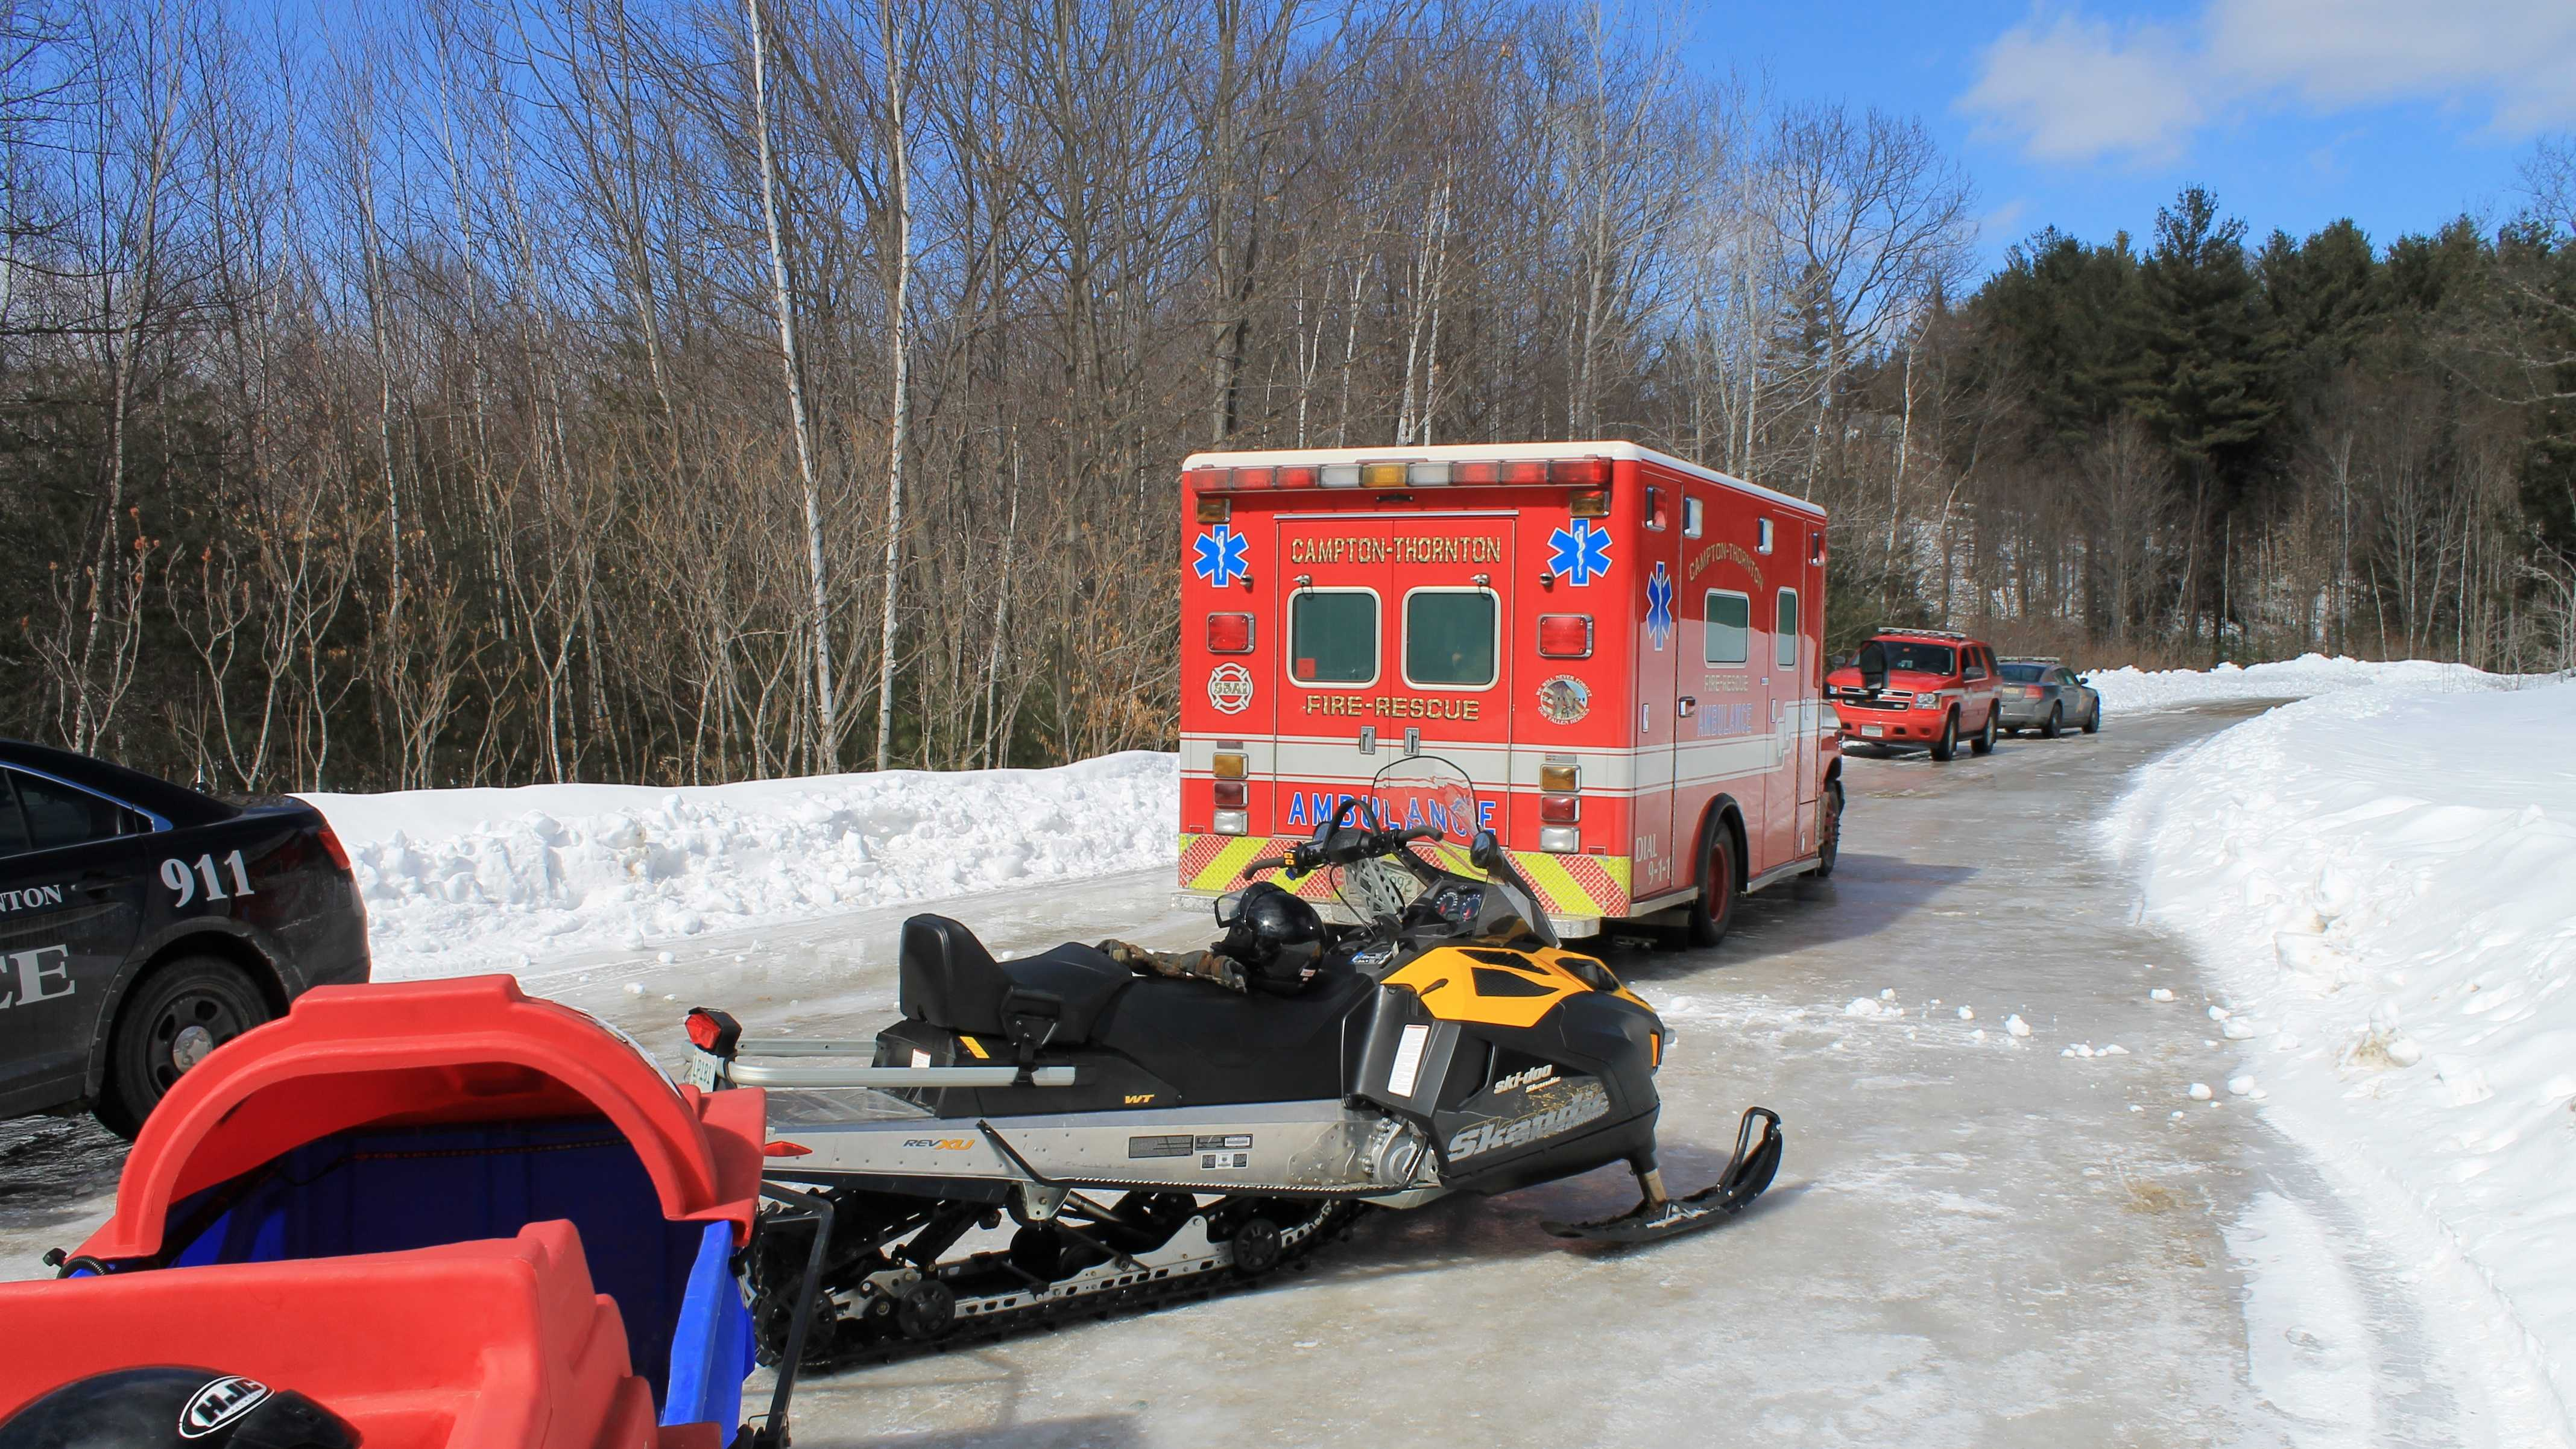 Campton-Thornton Fire-Rescue responded to a snowmobile crash with injuries Sunday.